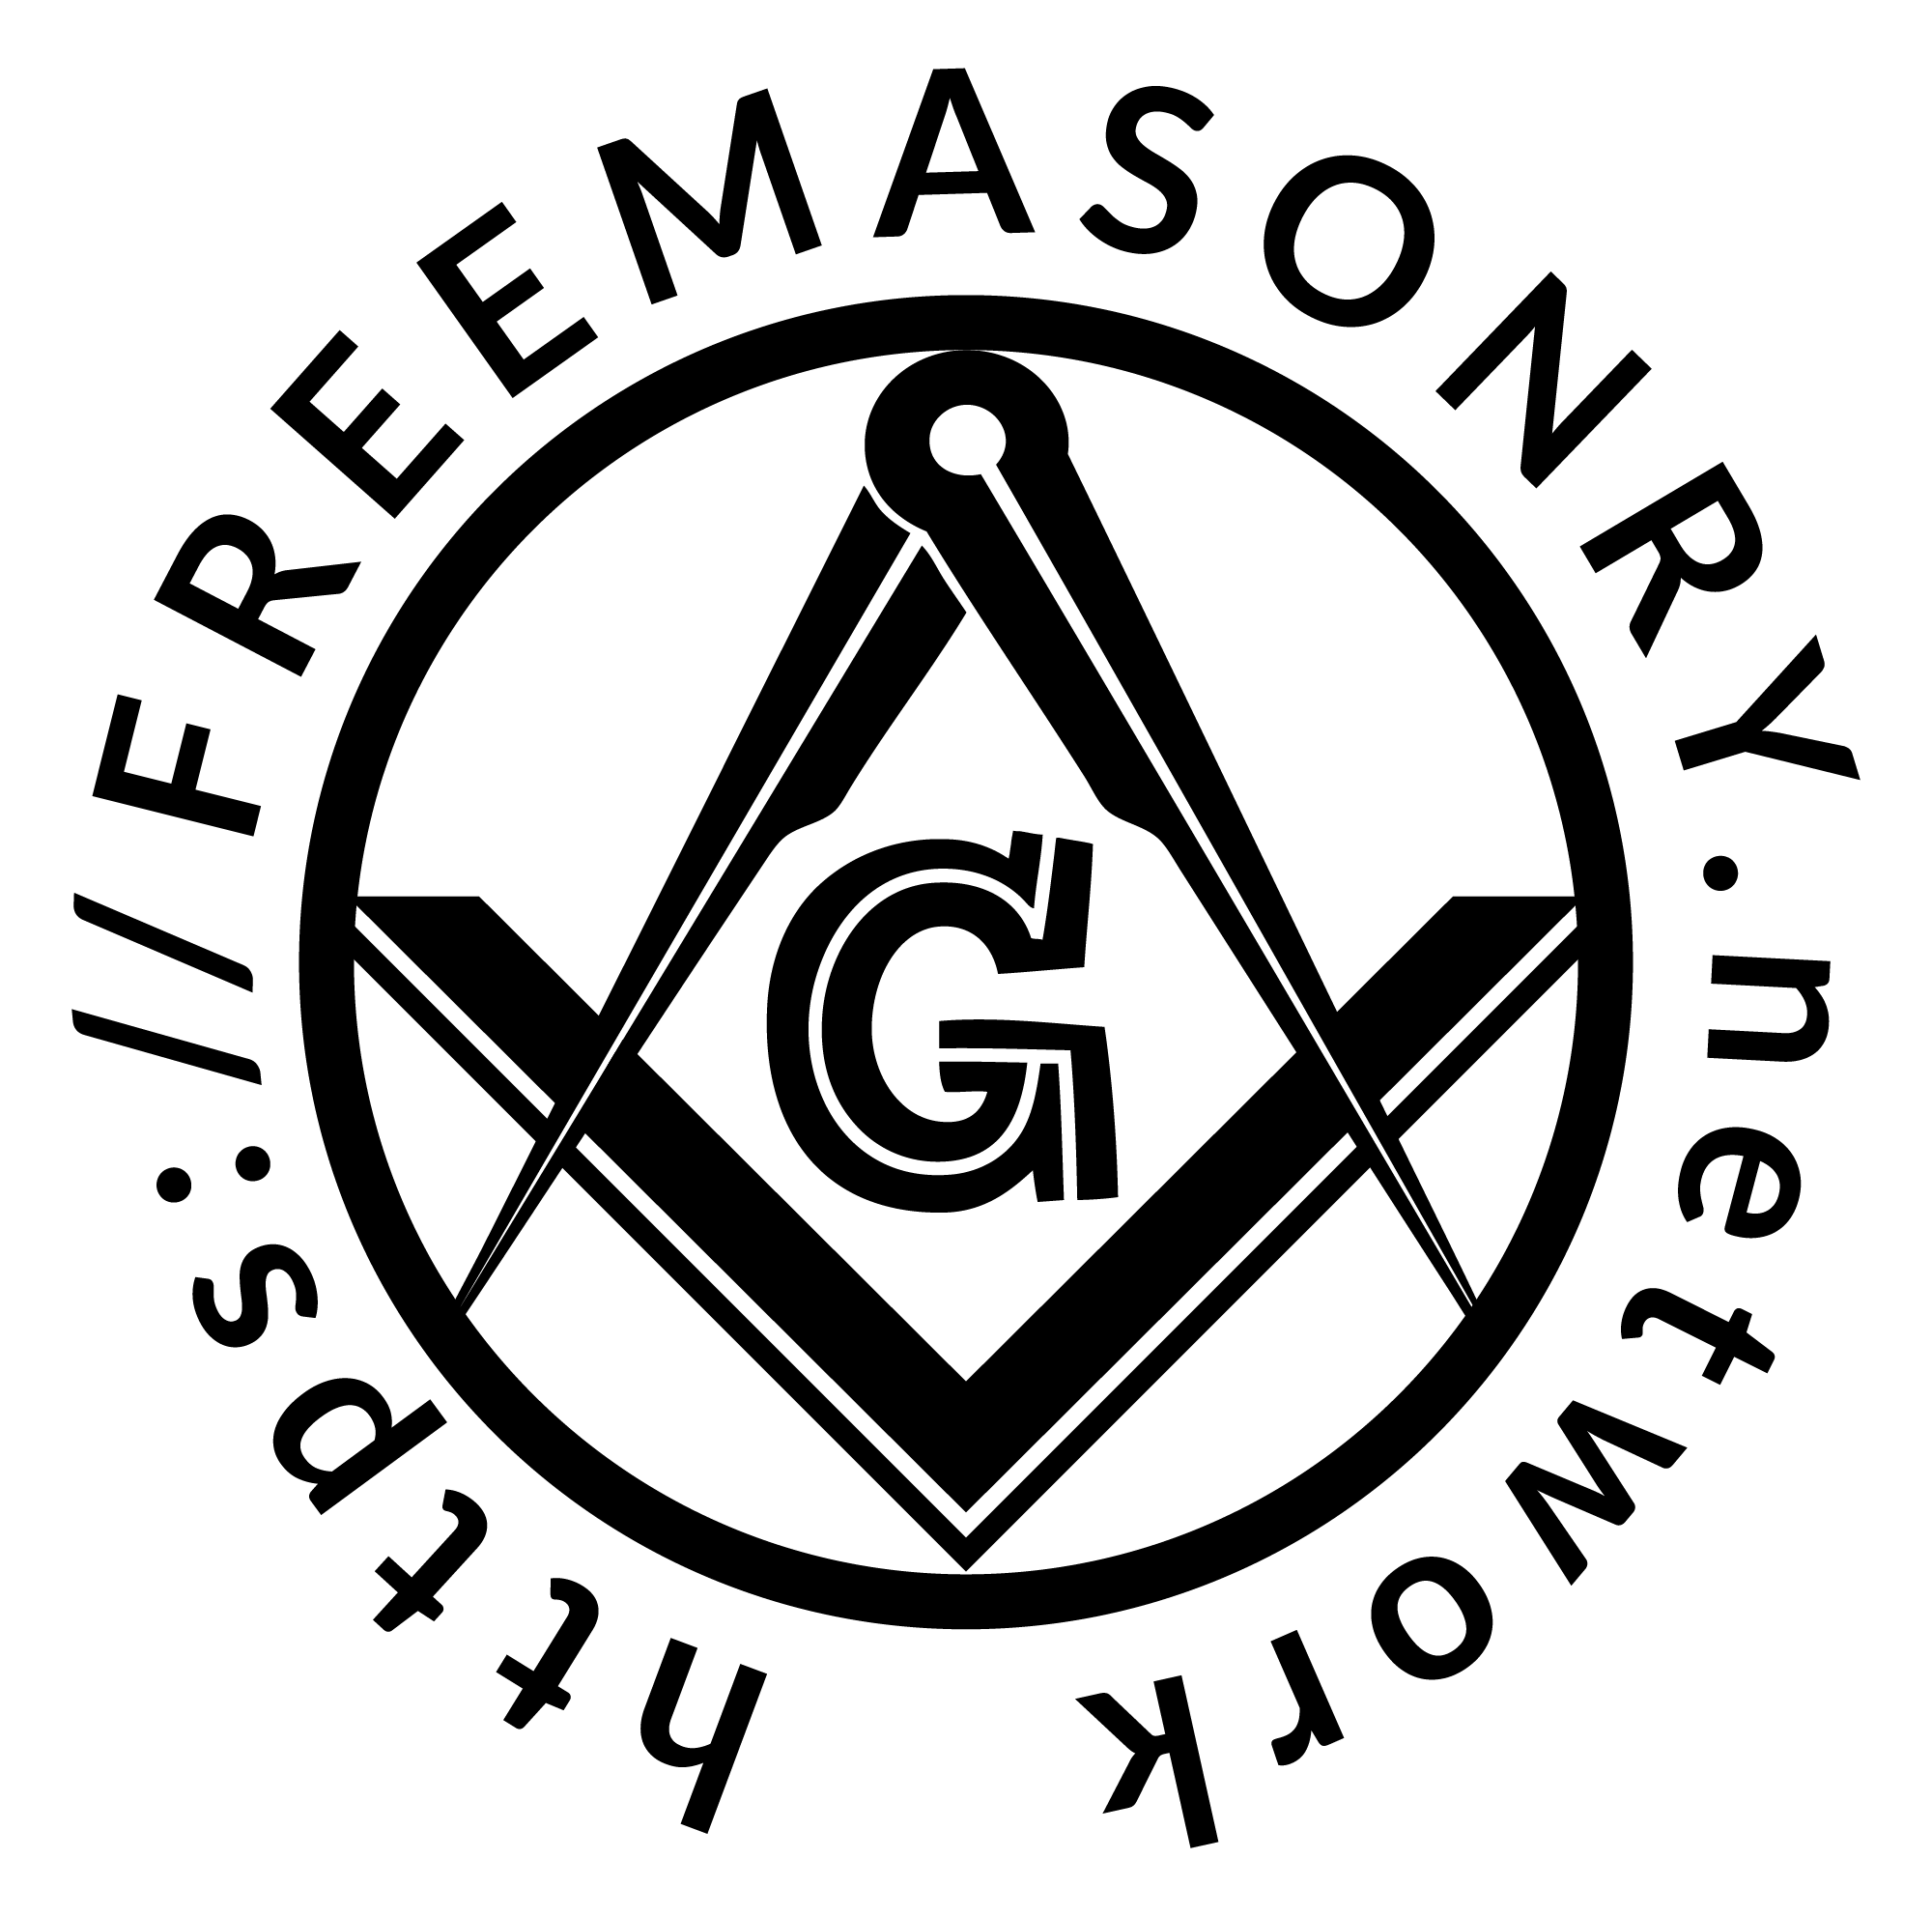 Freemasonry in USA, US Freemasonry, Freemasonry in America, American Freemasonry